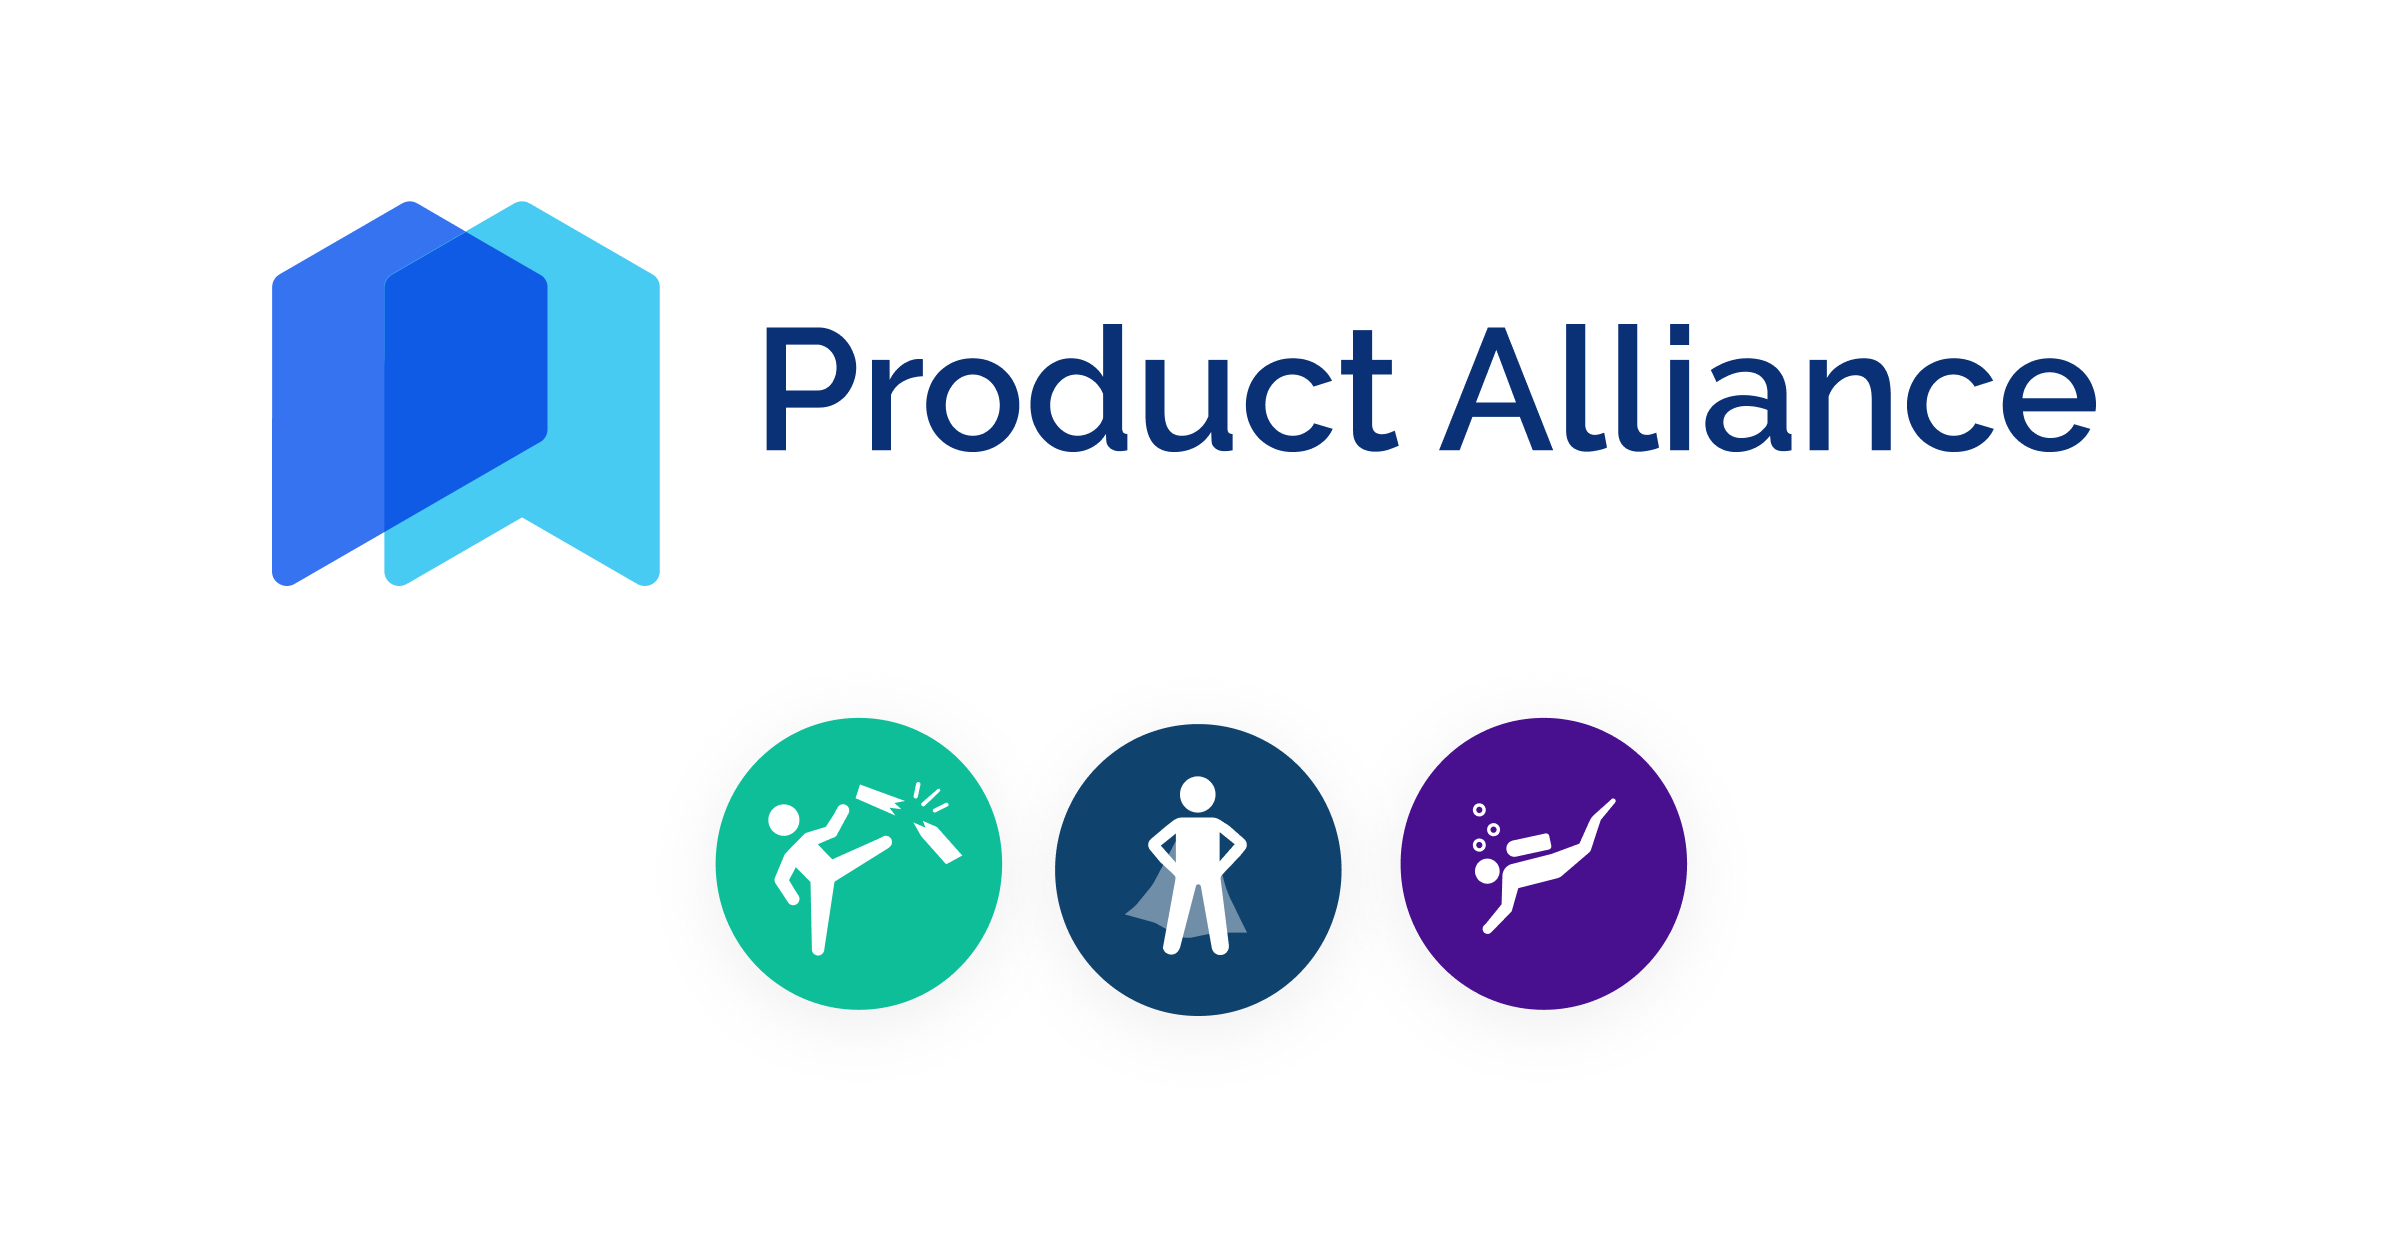 Product Alliance | Learn how to Break into Product from Top PMs